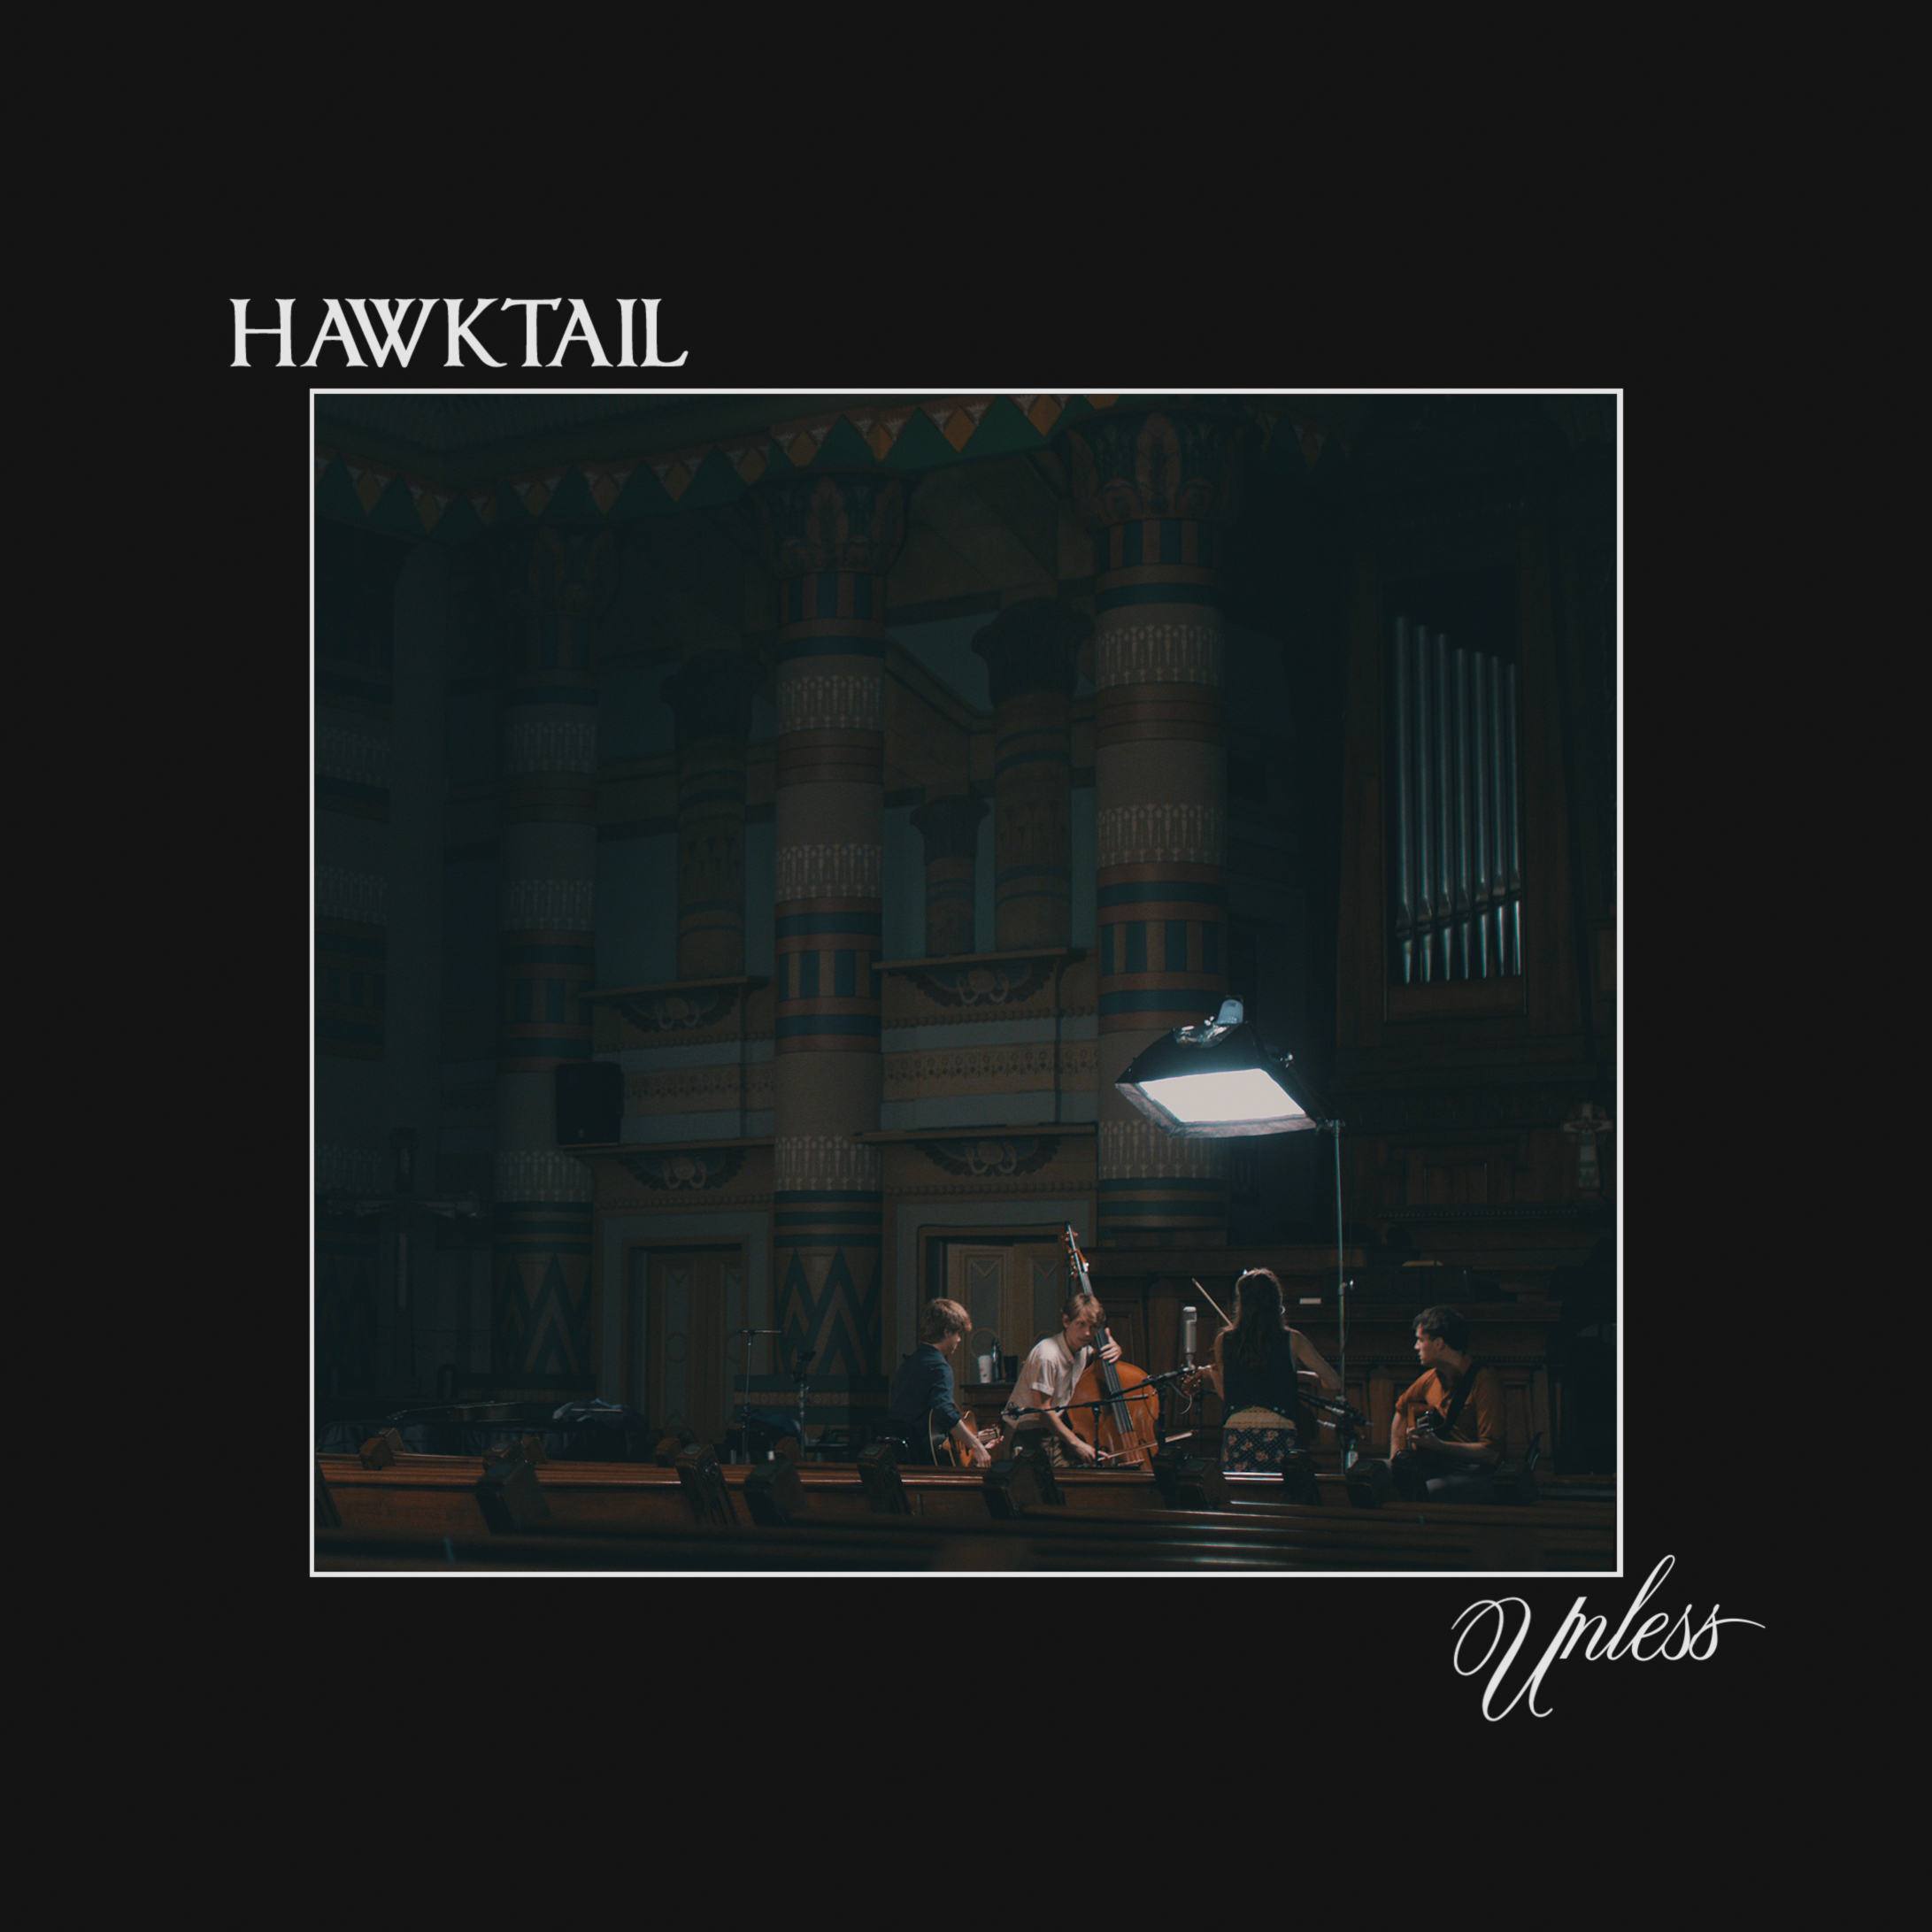 Hawktail - Unless - FINAL DIGITAL COVER SQUARE FULL RES RGB.jpg